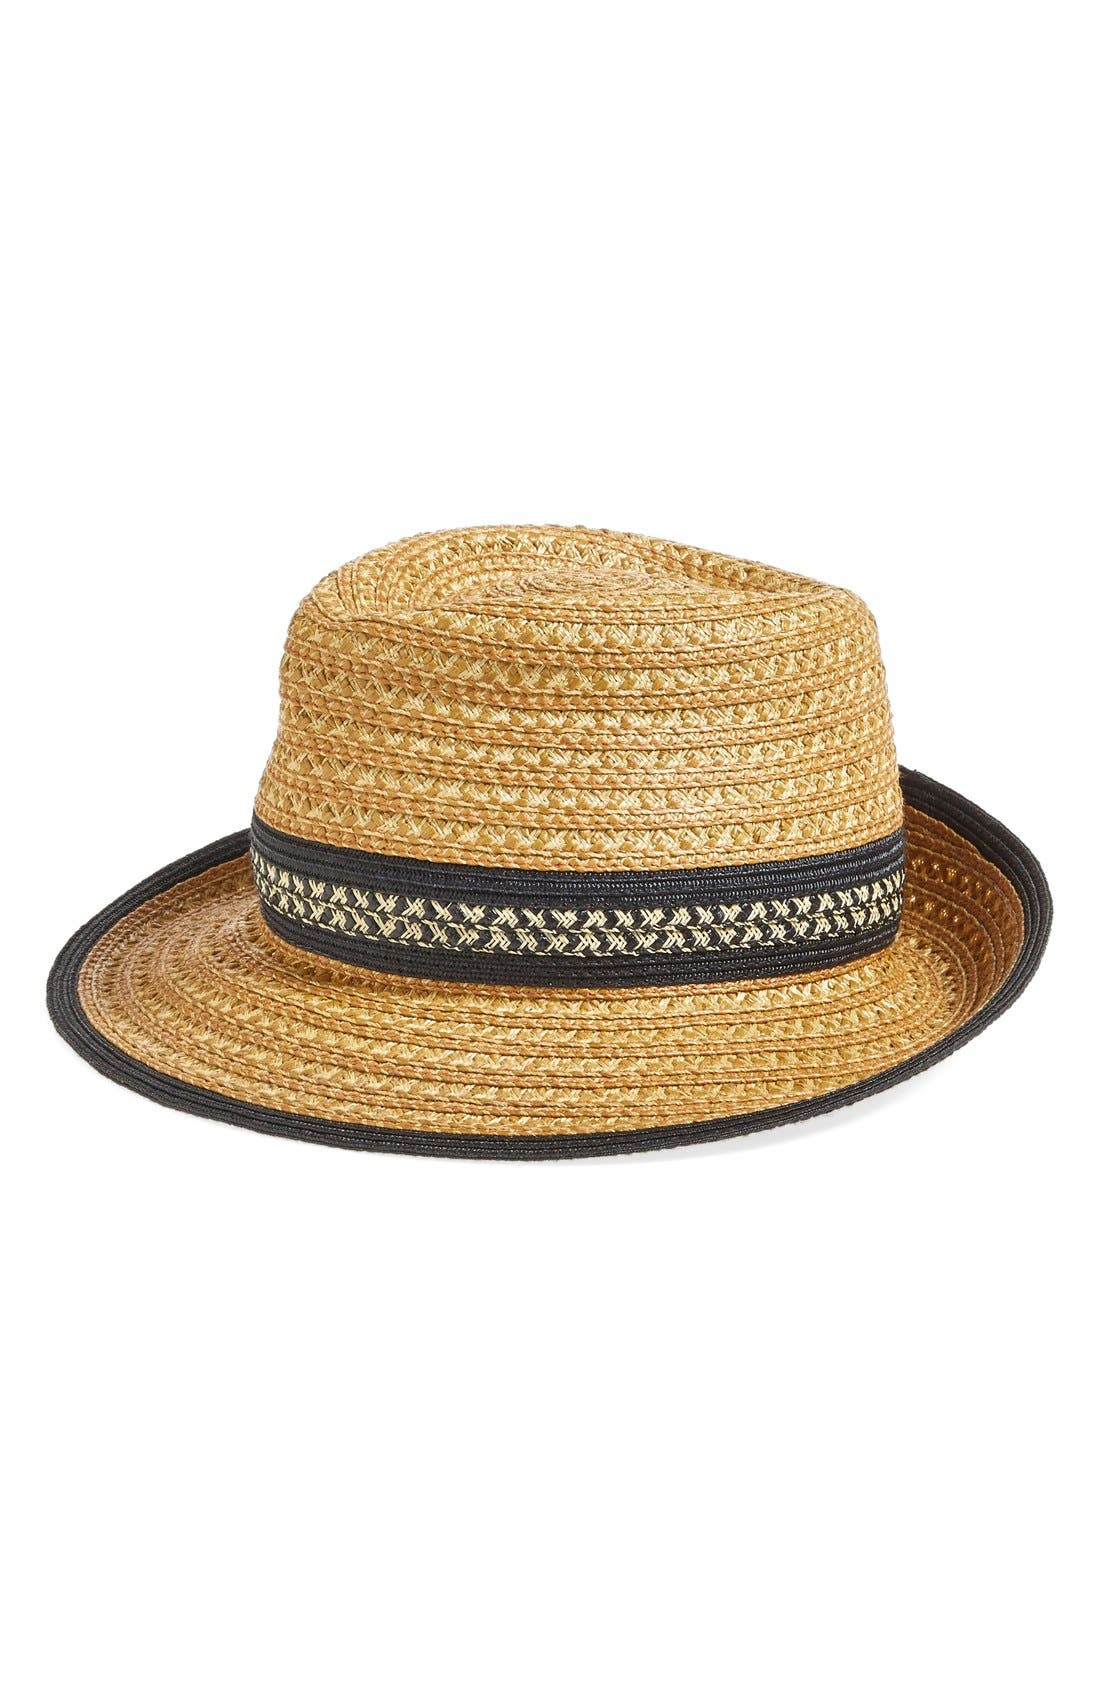 Squishee<sup>®</sup> Straw Fedora,                         Main,                         color, 252